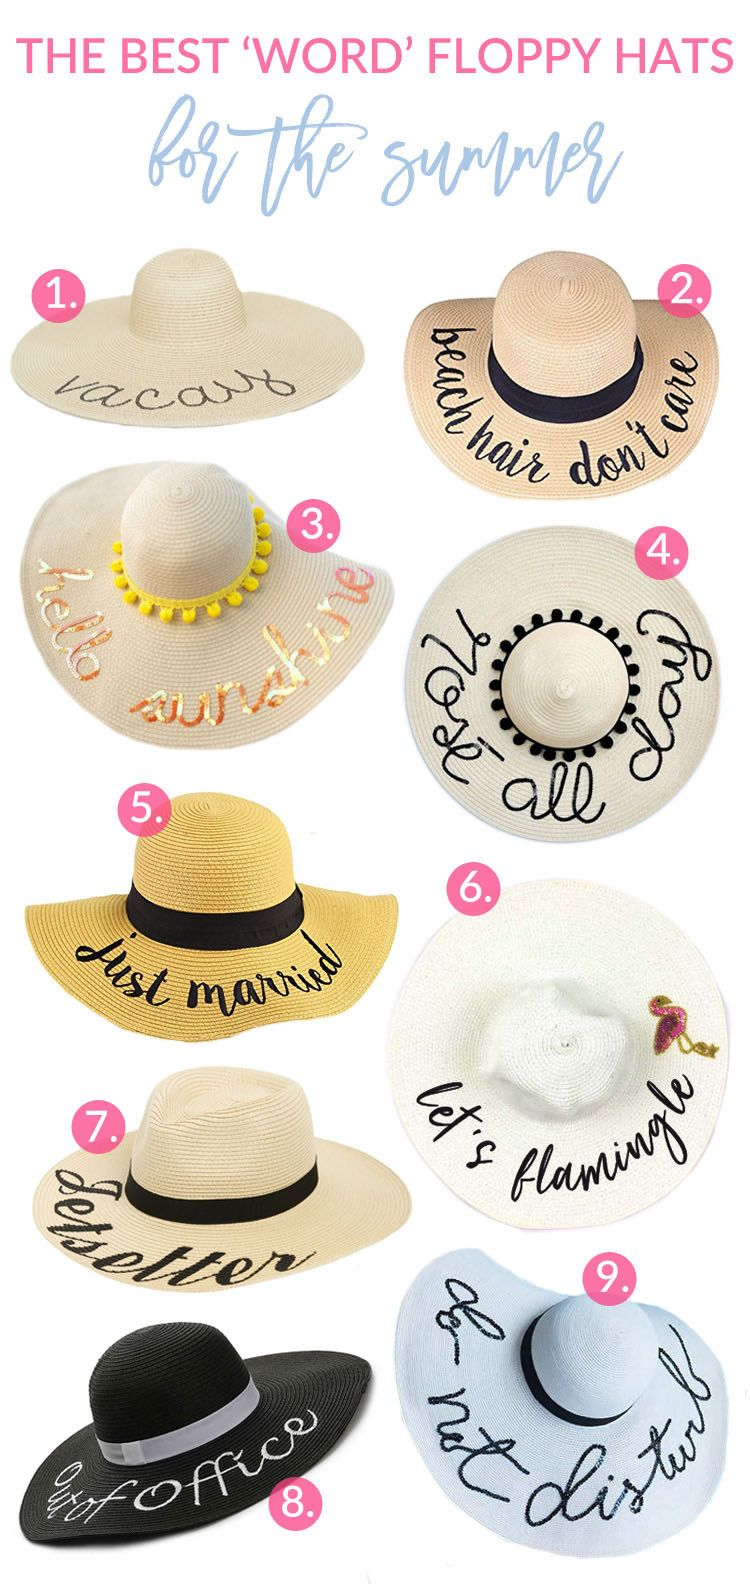 930fb49a1 Sandy a la Mode rounds up 9 of the cutest word floppy hats out there